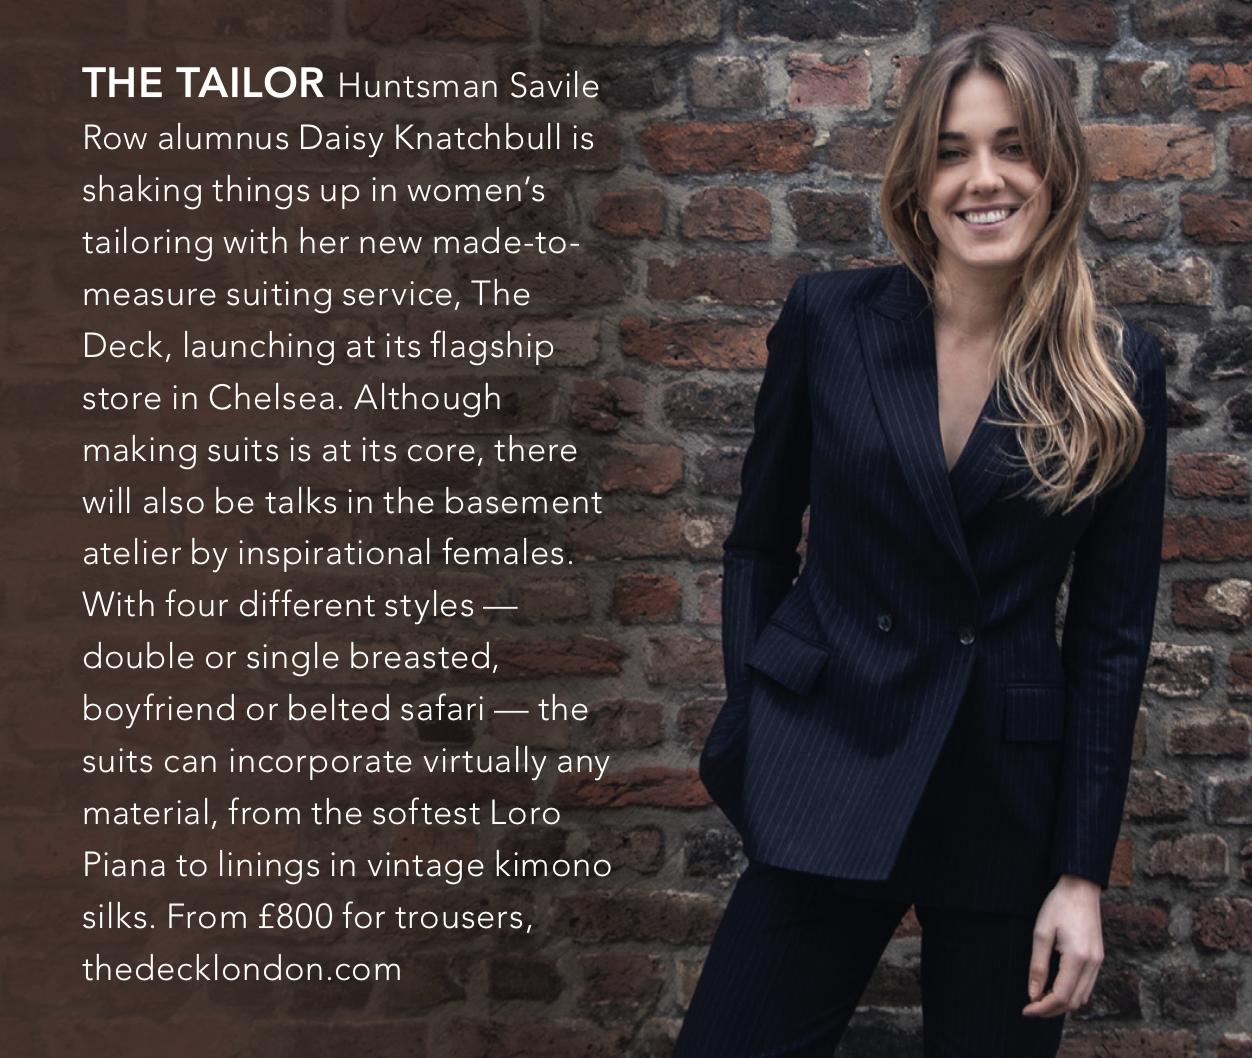 Sphere Magazine - Savile Row tailor alumnus Daisy is shaking things up in women's tailoring with her new made-to-measure suiting service. The Deck, launching at its flagship store in Chelsea.